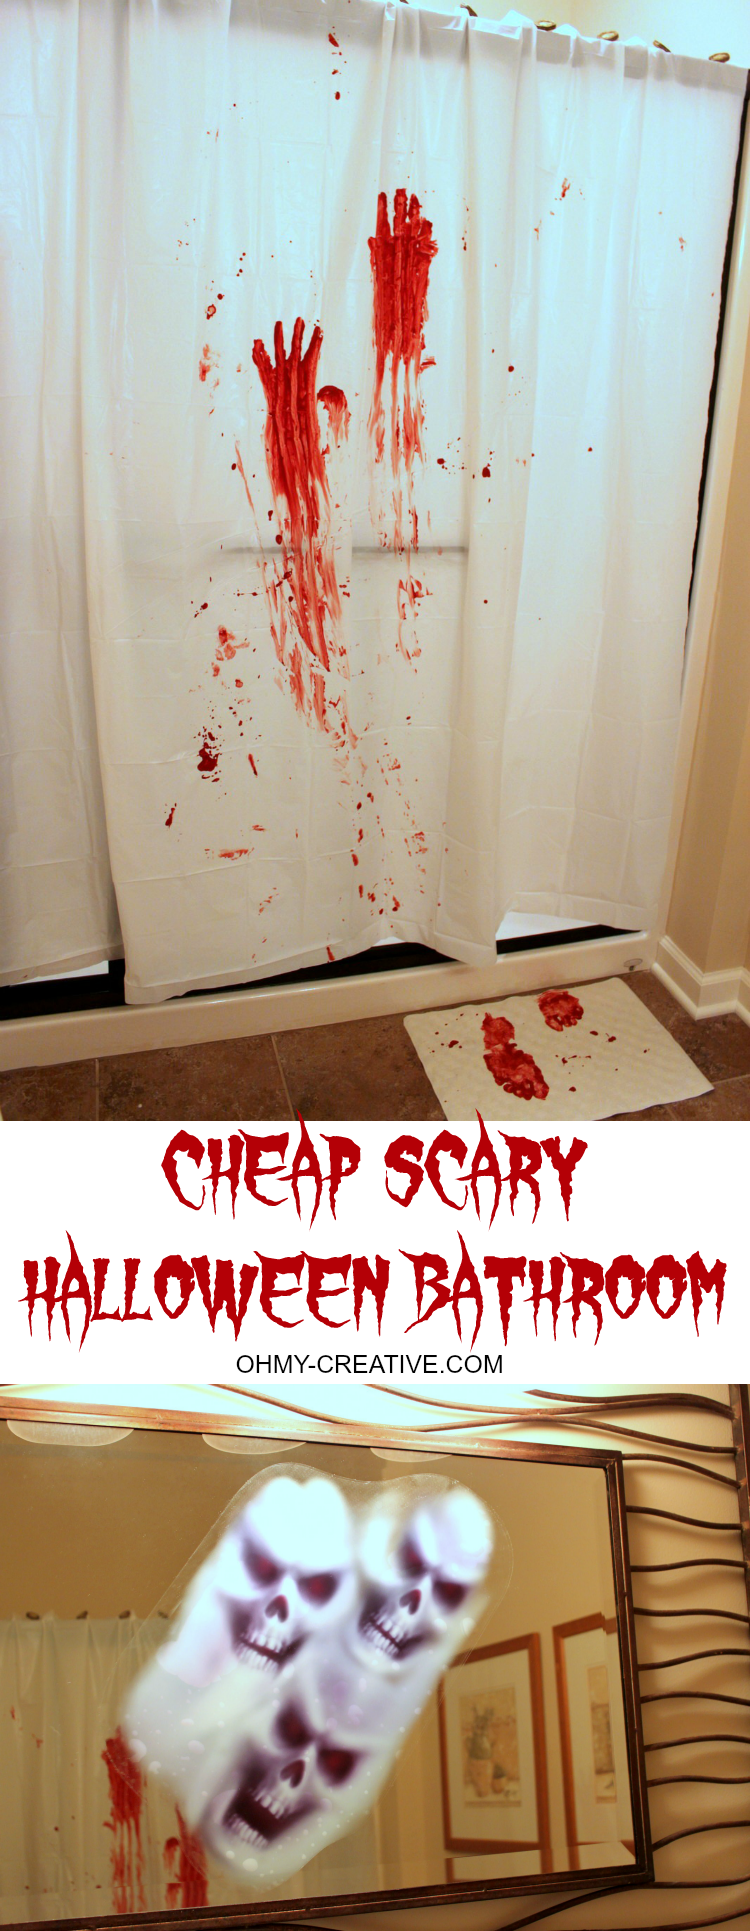 Scary halloween party bathroom oh my creative for Halloween bathroom ideas